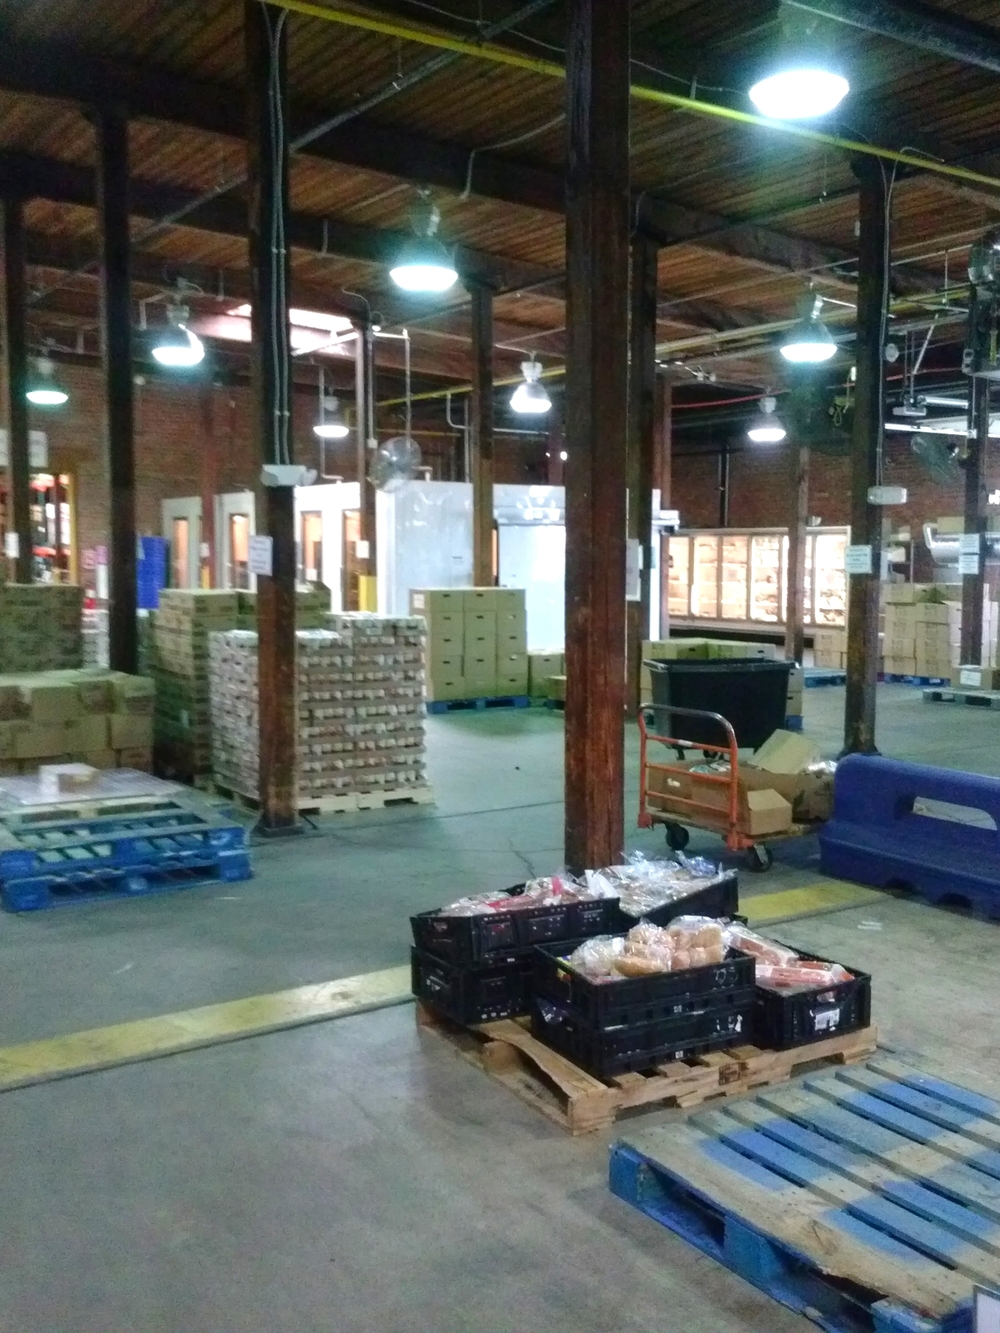 The FeedMore food bank that we toured.